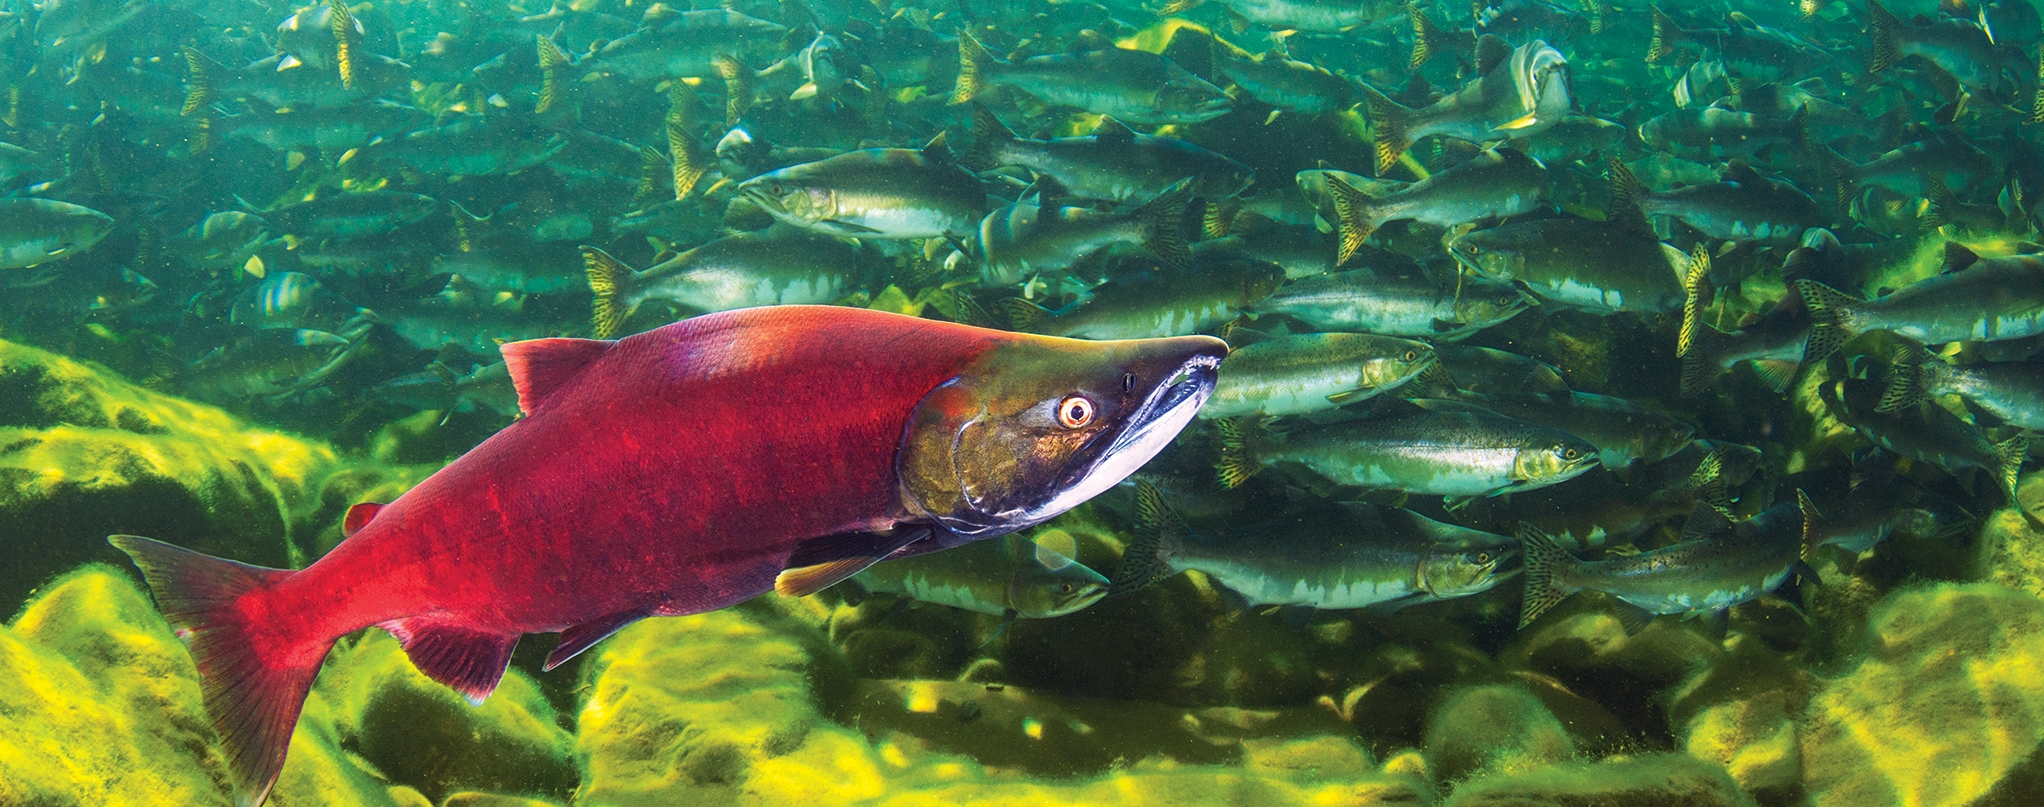 SPEAKING of SALMON - Films, photos, and writing in support and celebration of wild salmon